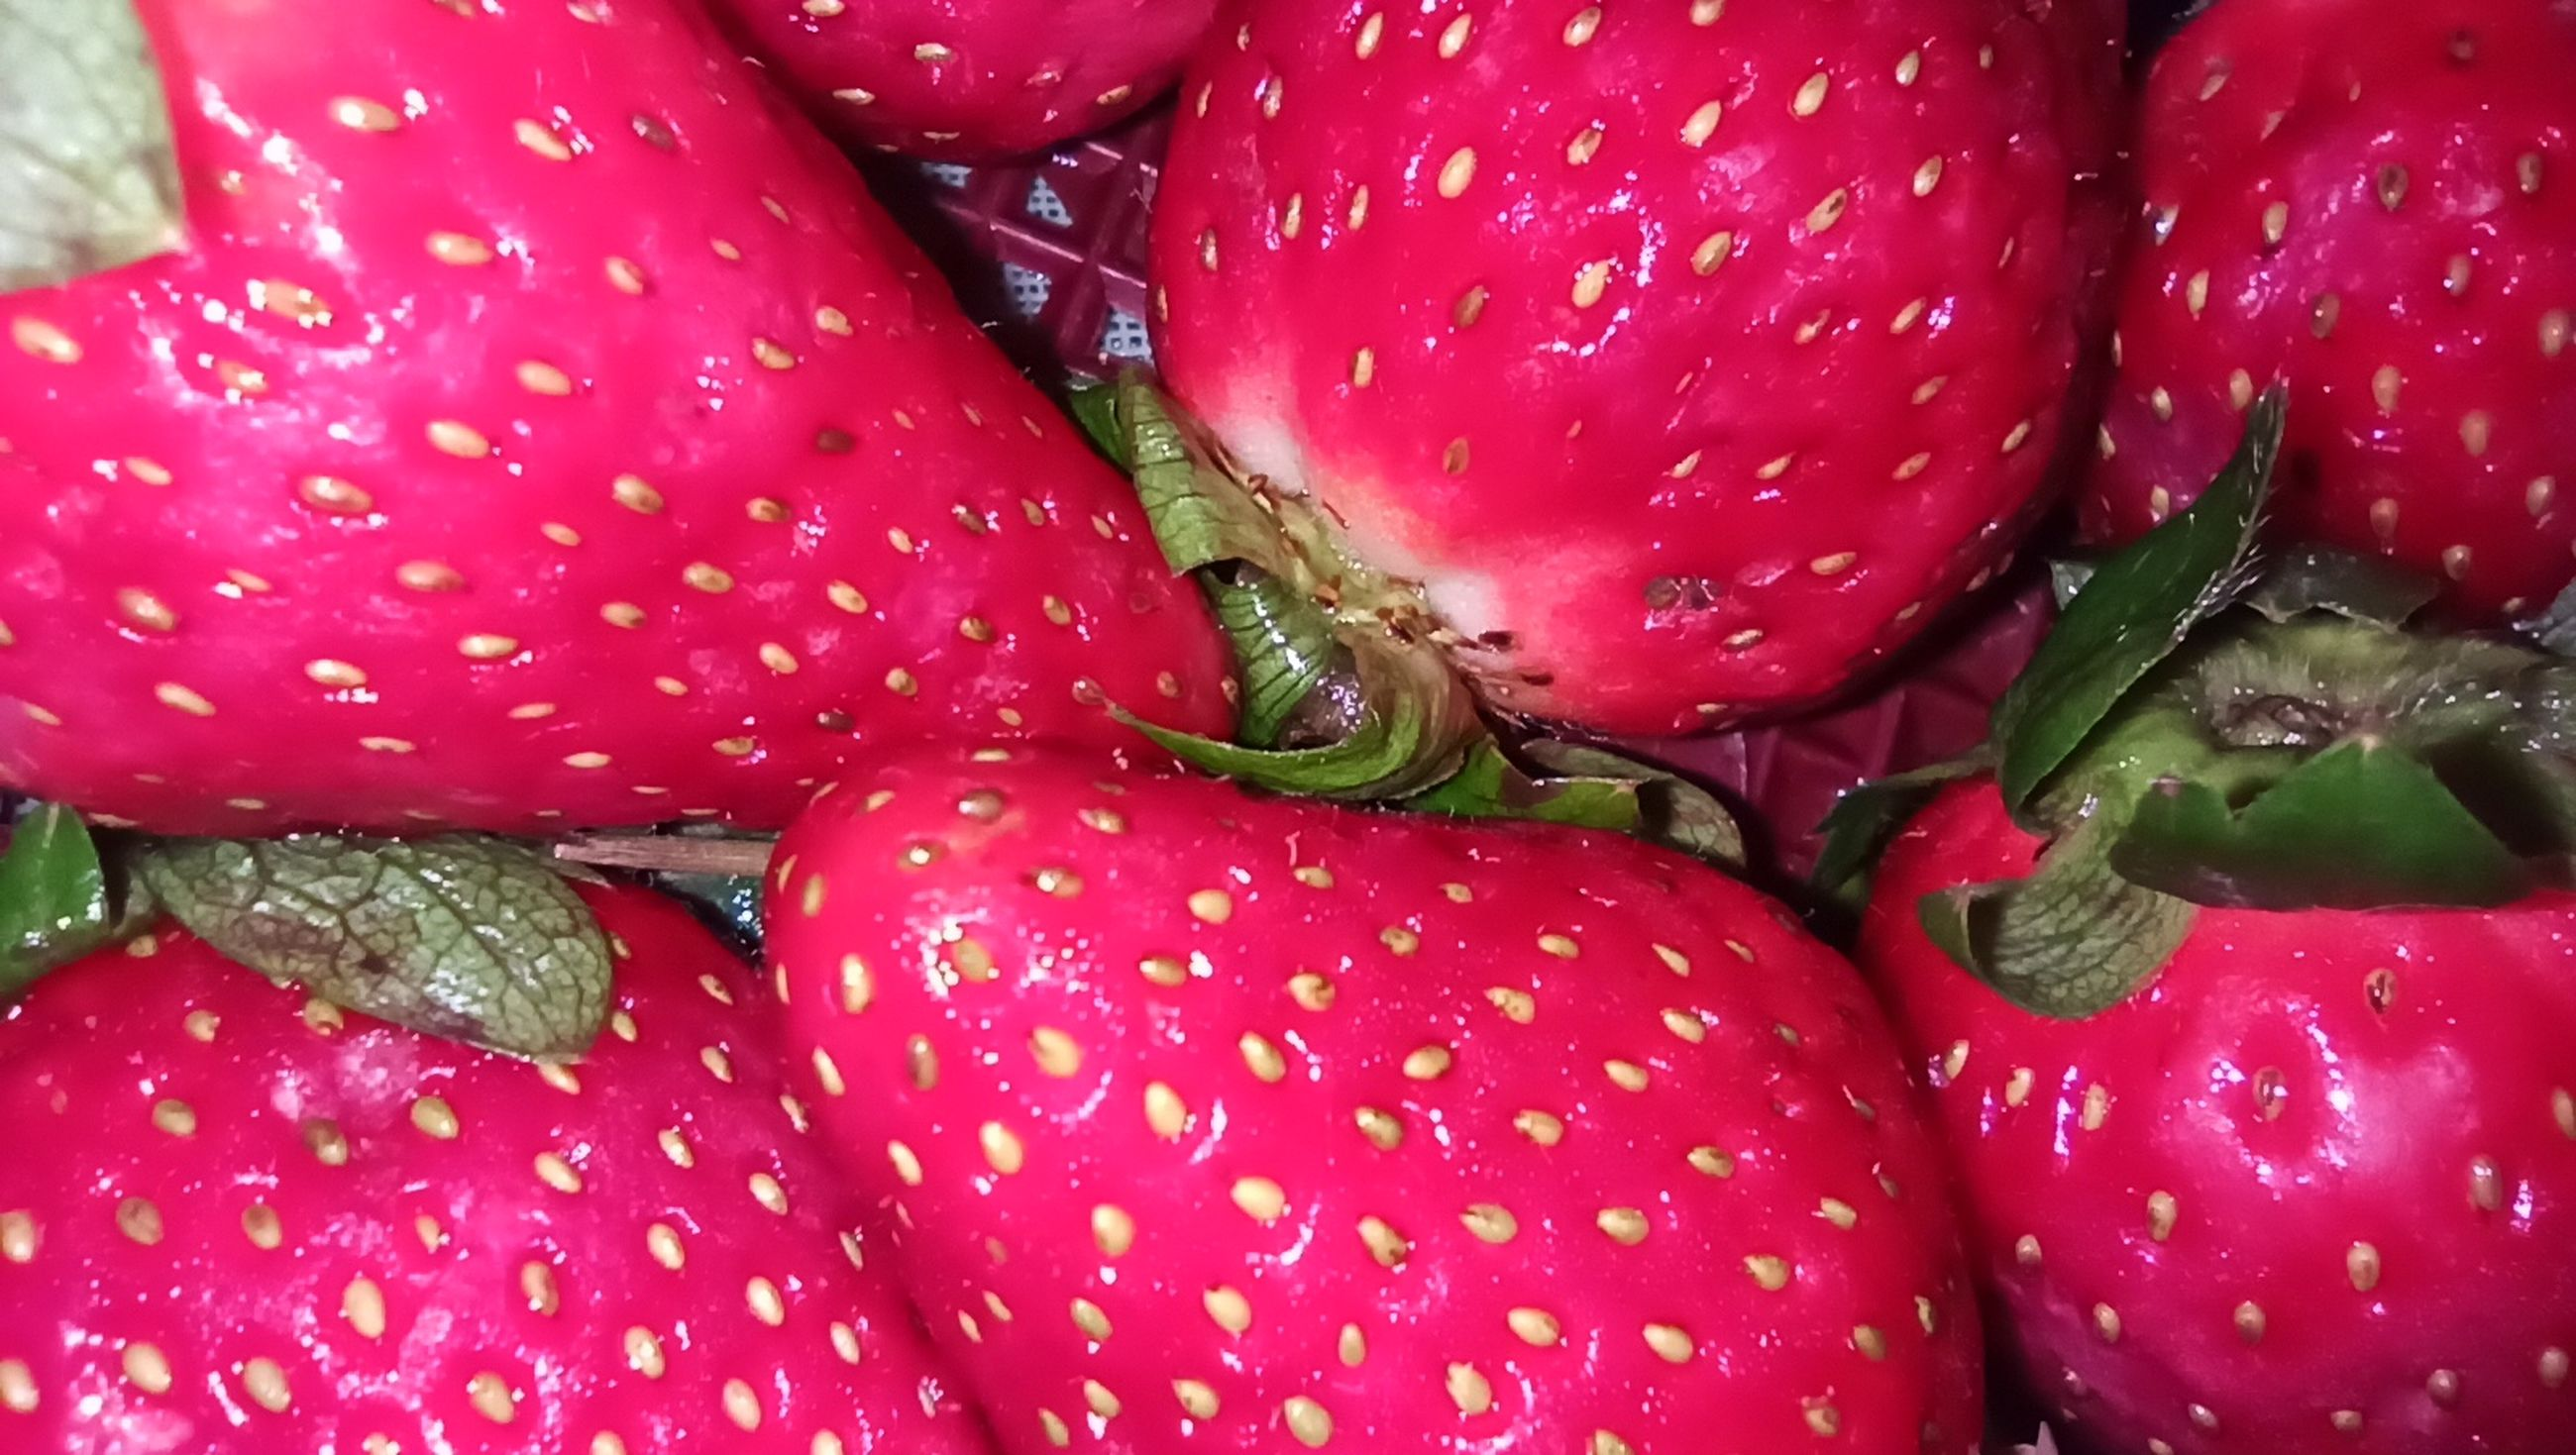 food and drink, freshness, healthy eating, food, fruit, plant, wellbeing, produce, red, full frame, close-up, no people, strawberry, backgrounds, vegetable, still life, pink, indoors, flower, organic, market, high angle view, for sale, wet